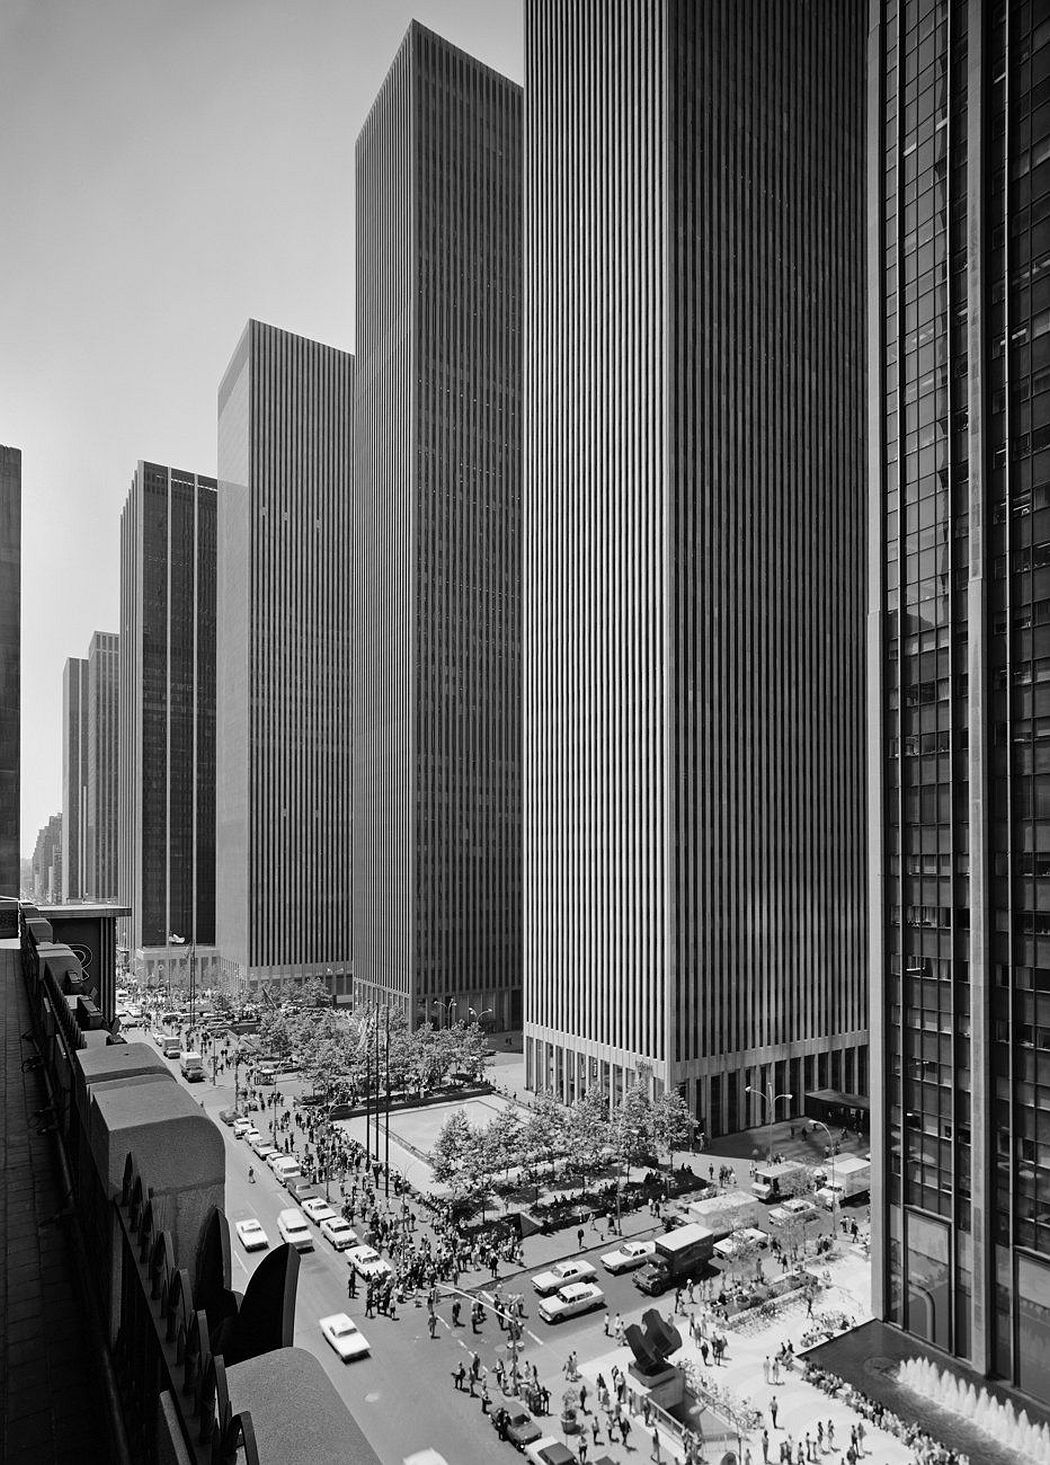 Ezra Stoller Exxon Building on Sixth Avenue. Harrison and Abramovitz. New York, 1974 © Ezra Stoller, Courtesy Yossi Milo Gallery, New York